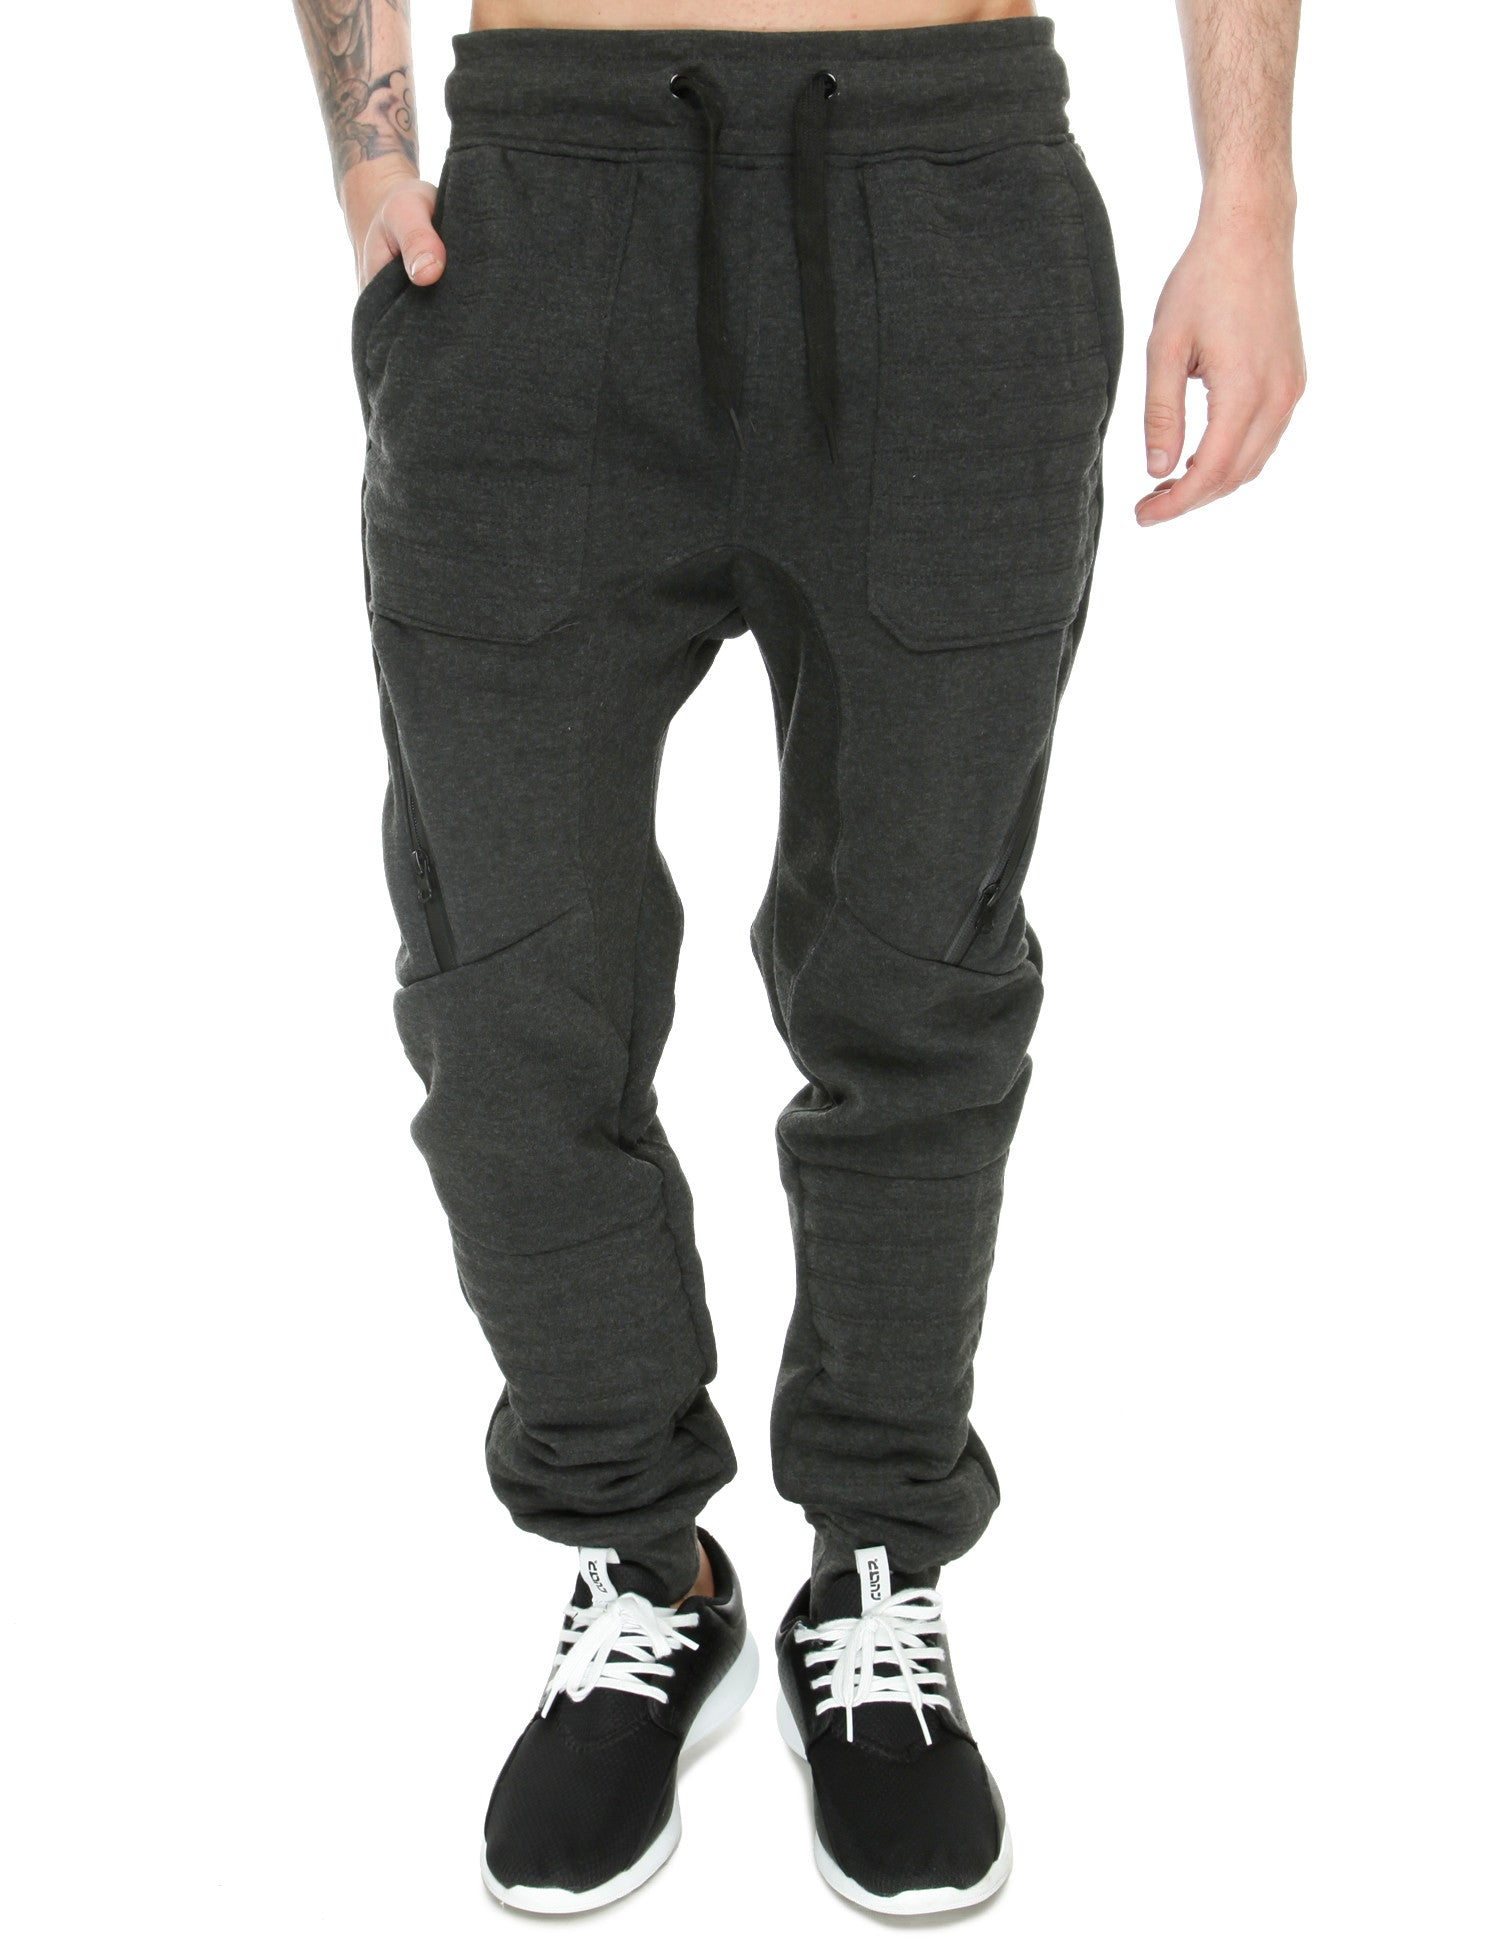 Switch Drop Crotch Sweatpant SF5455 Charcoal Grey